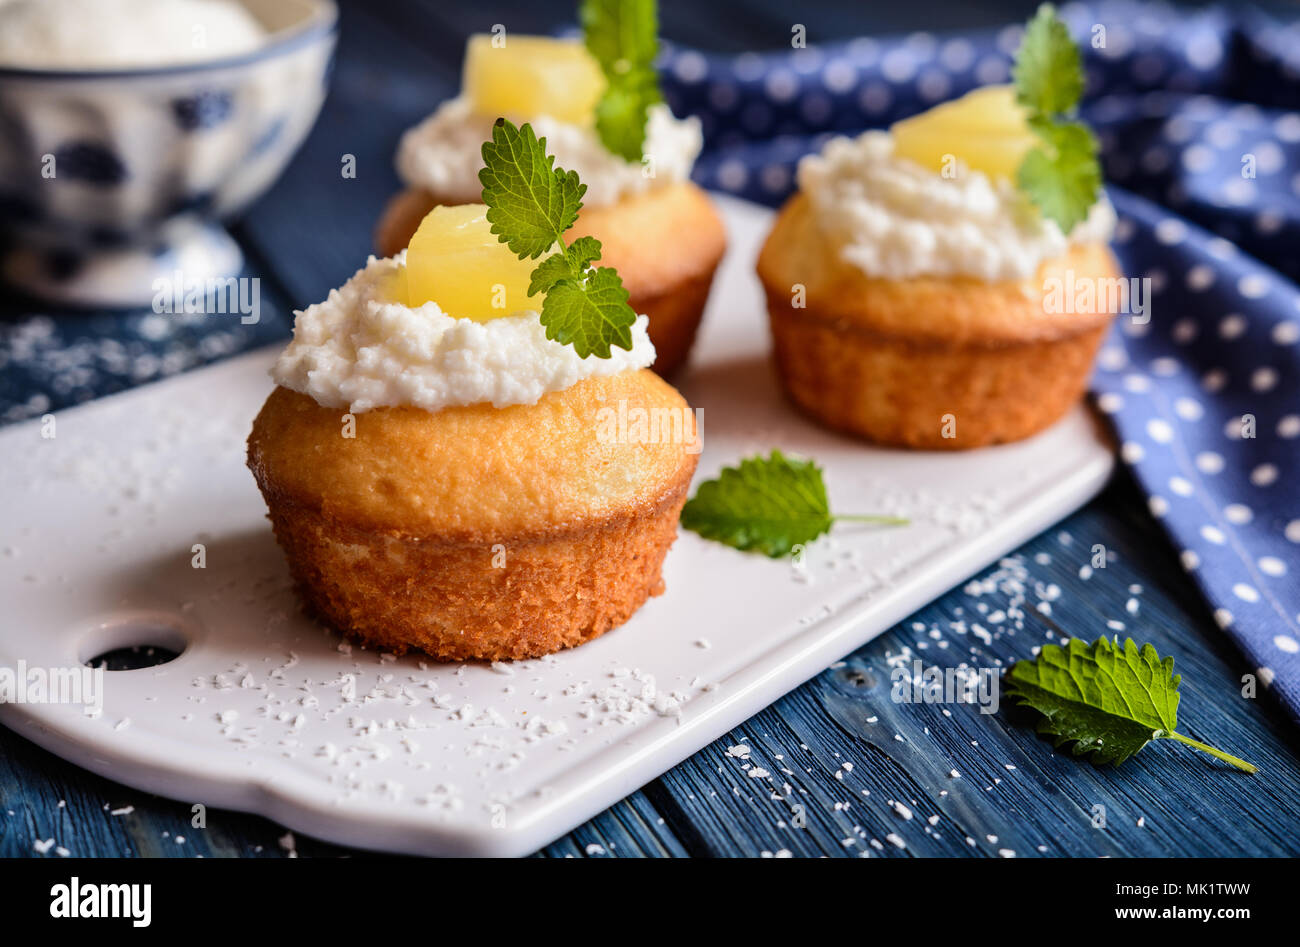 Coconut and pineapple muffins with yoghurt topping - Stock Image